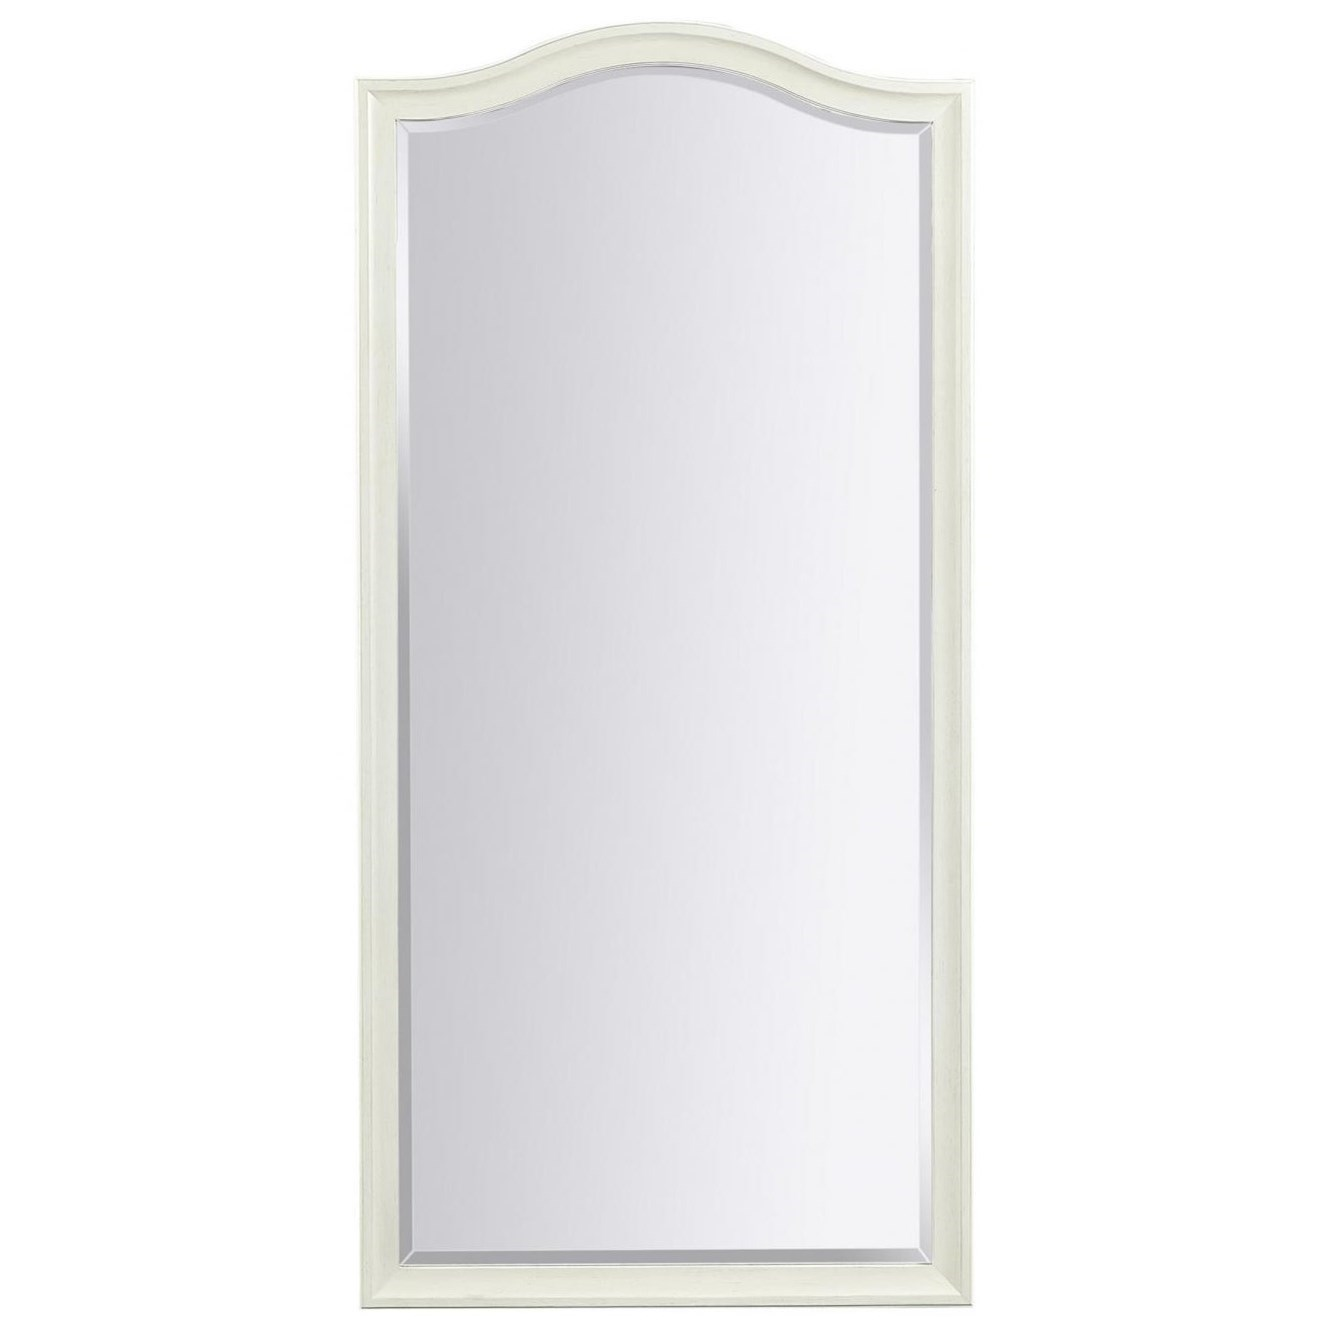 Charlotte  Floor Mirror by Aspenhome at Stoney Creek Furniture